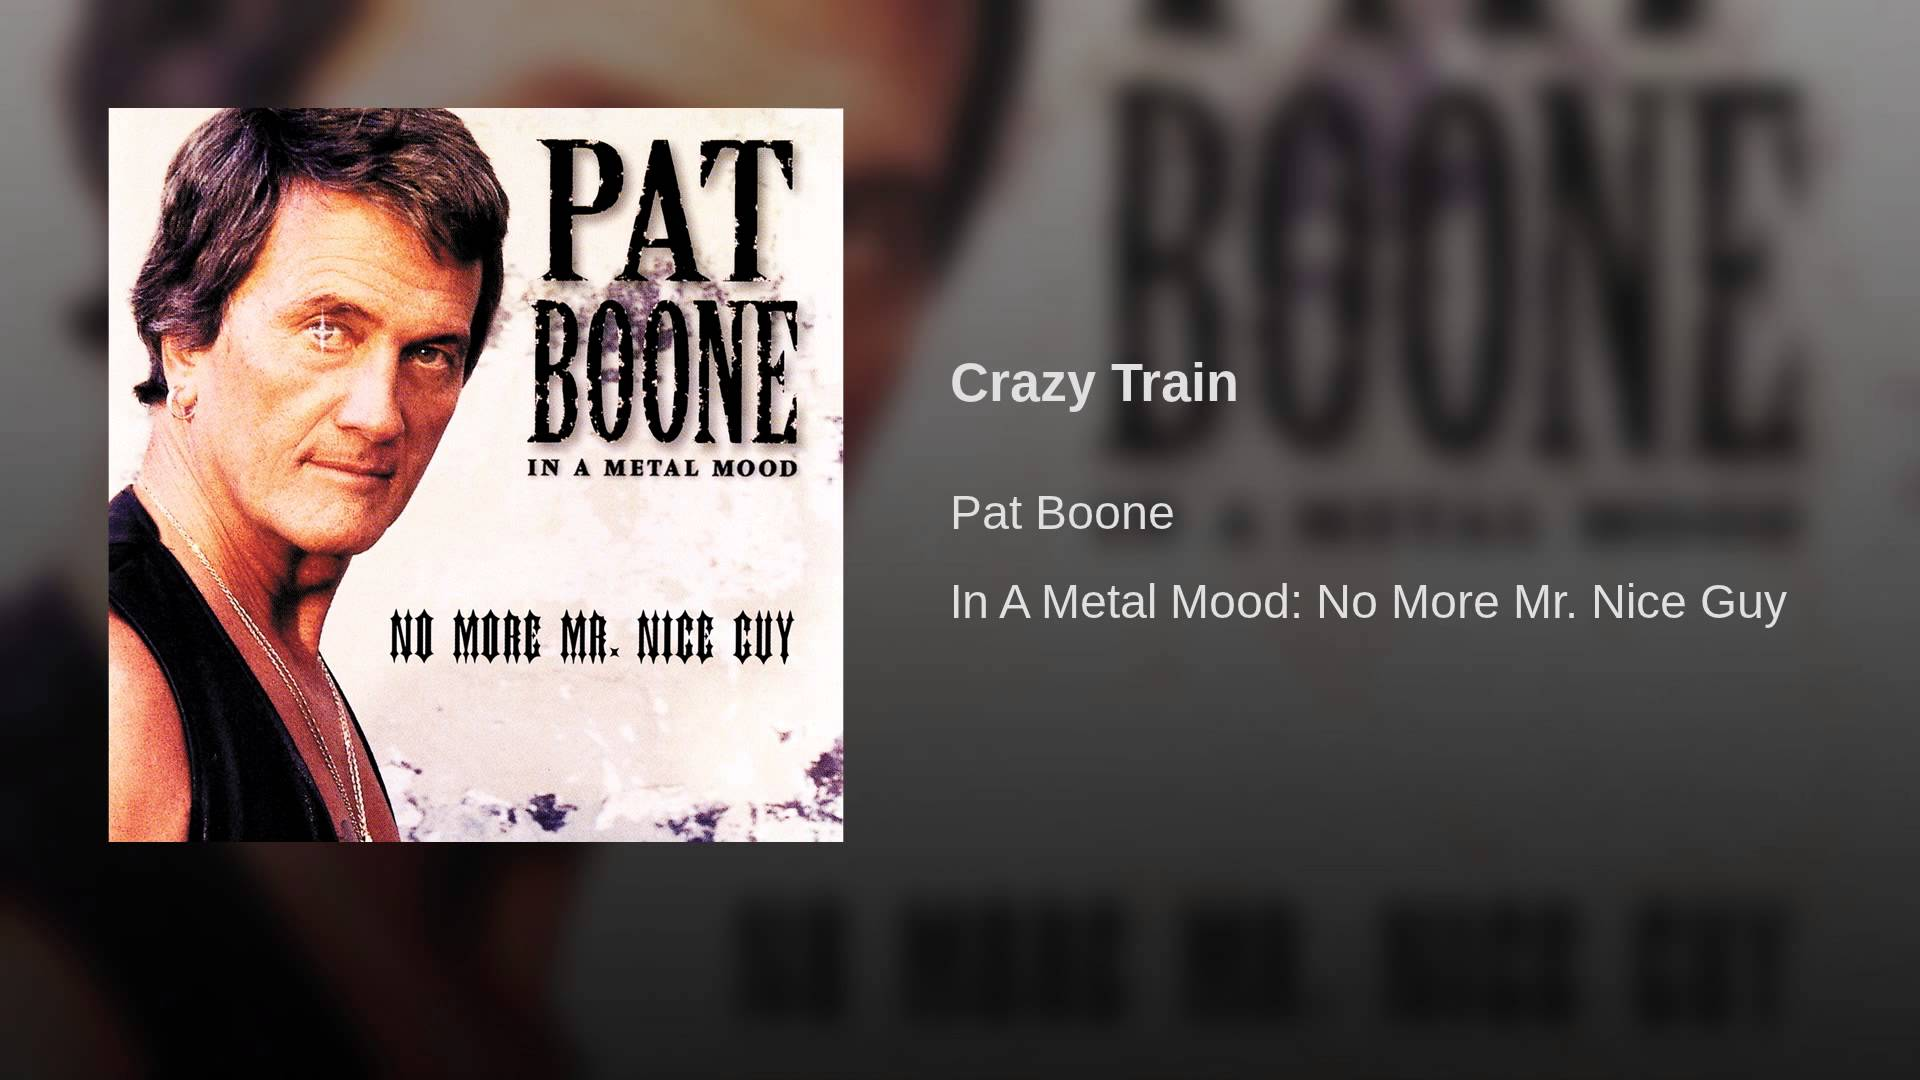 Interview: Wholesome singer Pat Boone remembers his heavy metal days